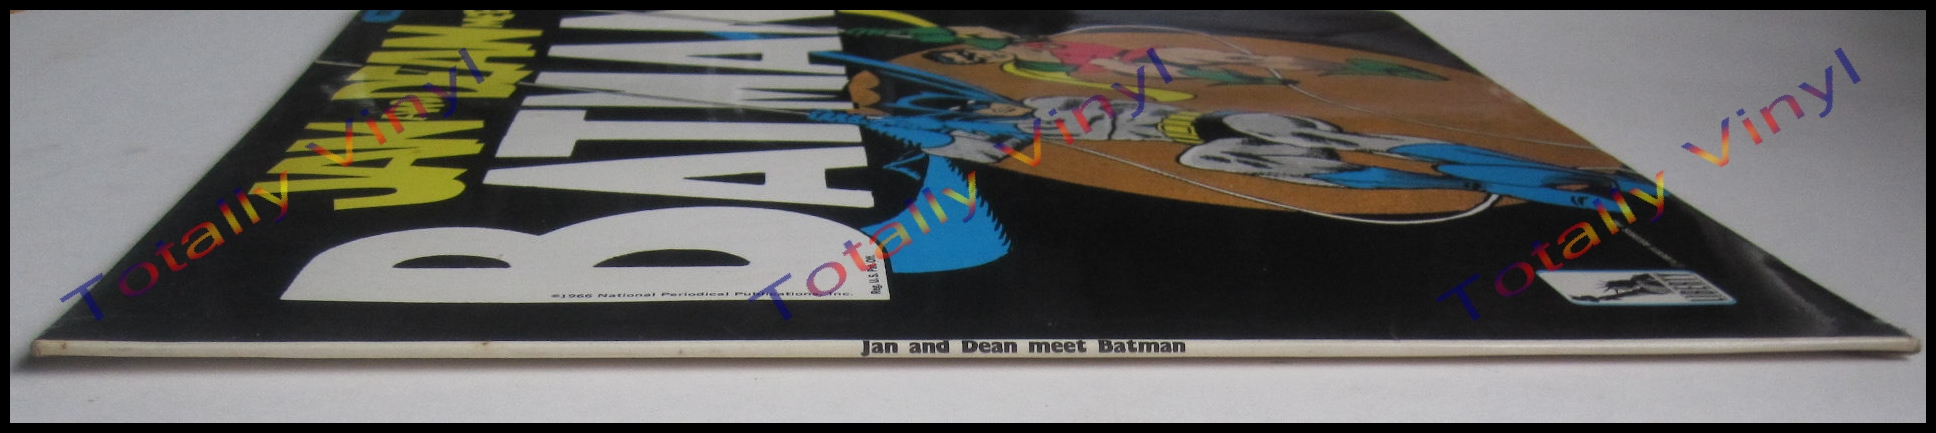 jan and dean meet batman vinyl sticker